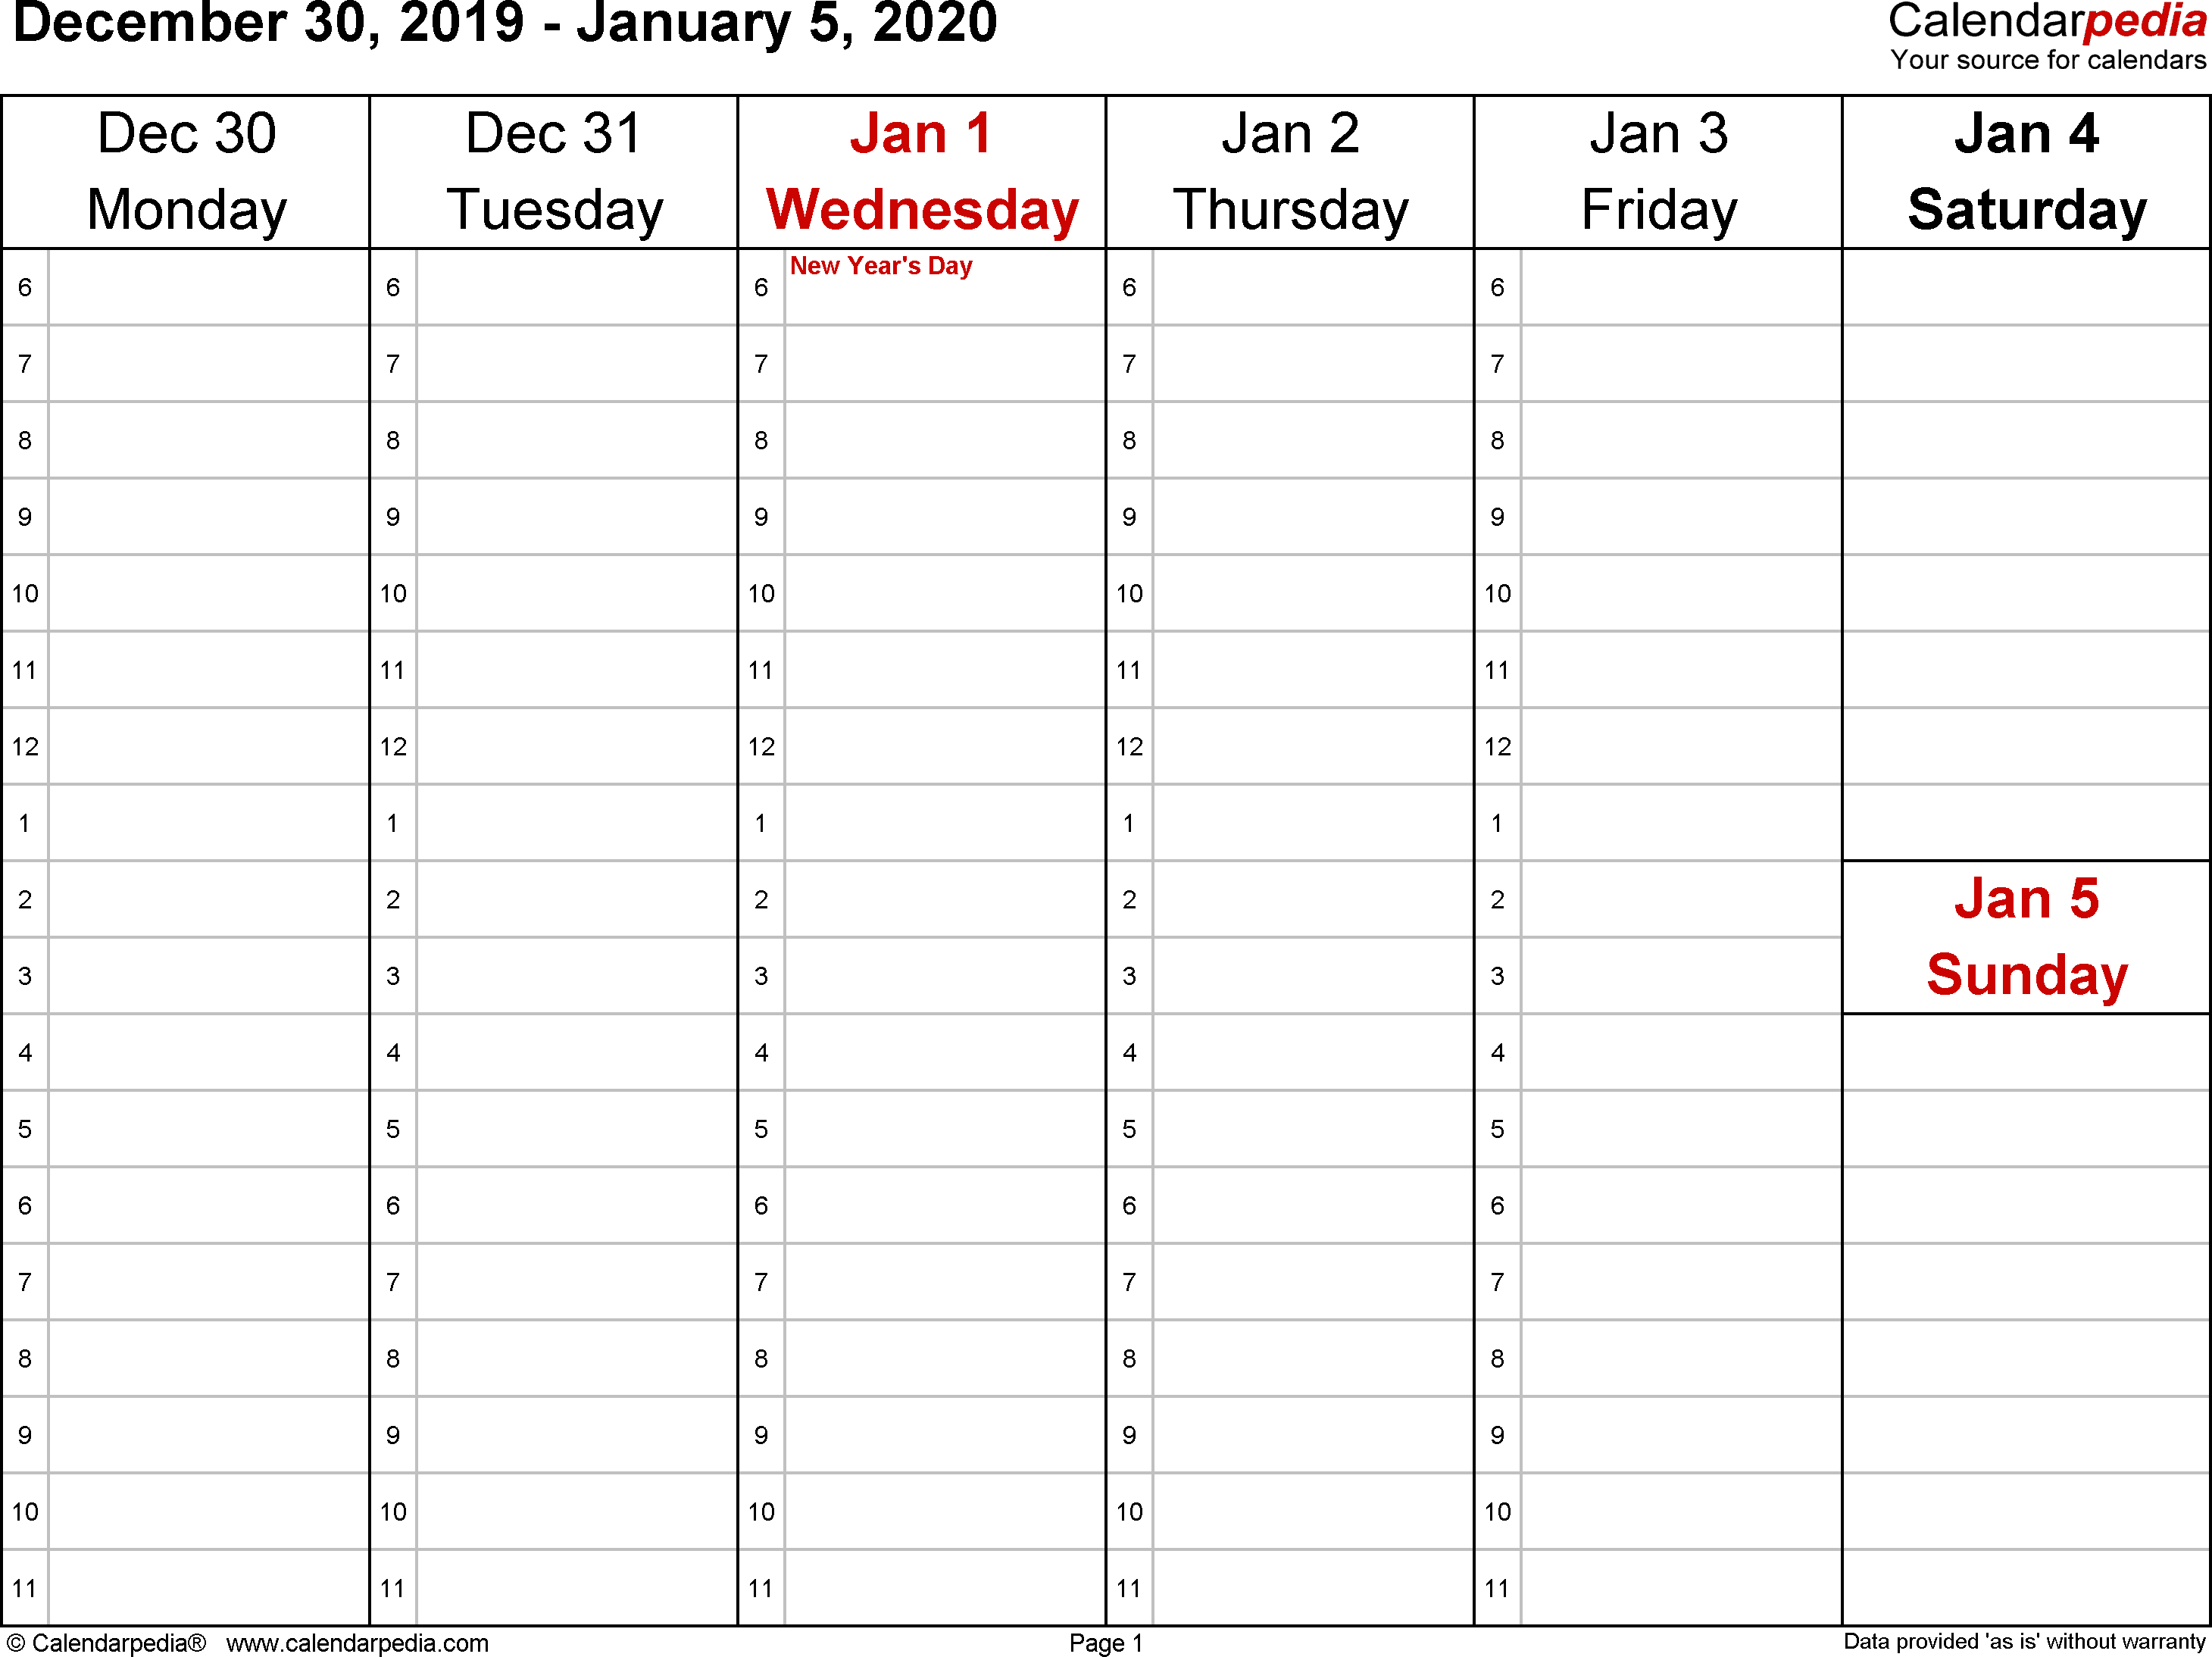 Weekly Calendar 2020 For Word - 12 Free Printable Templates for 2020 Calendar 8.5 X 11